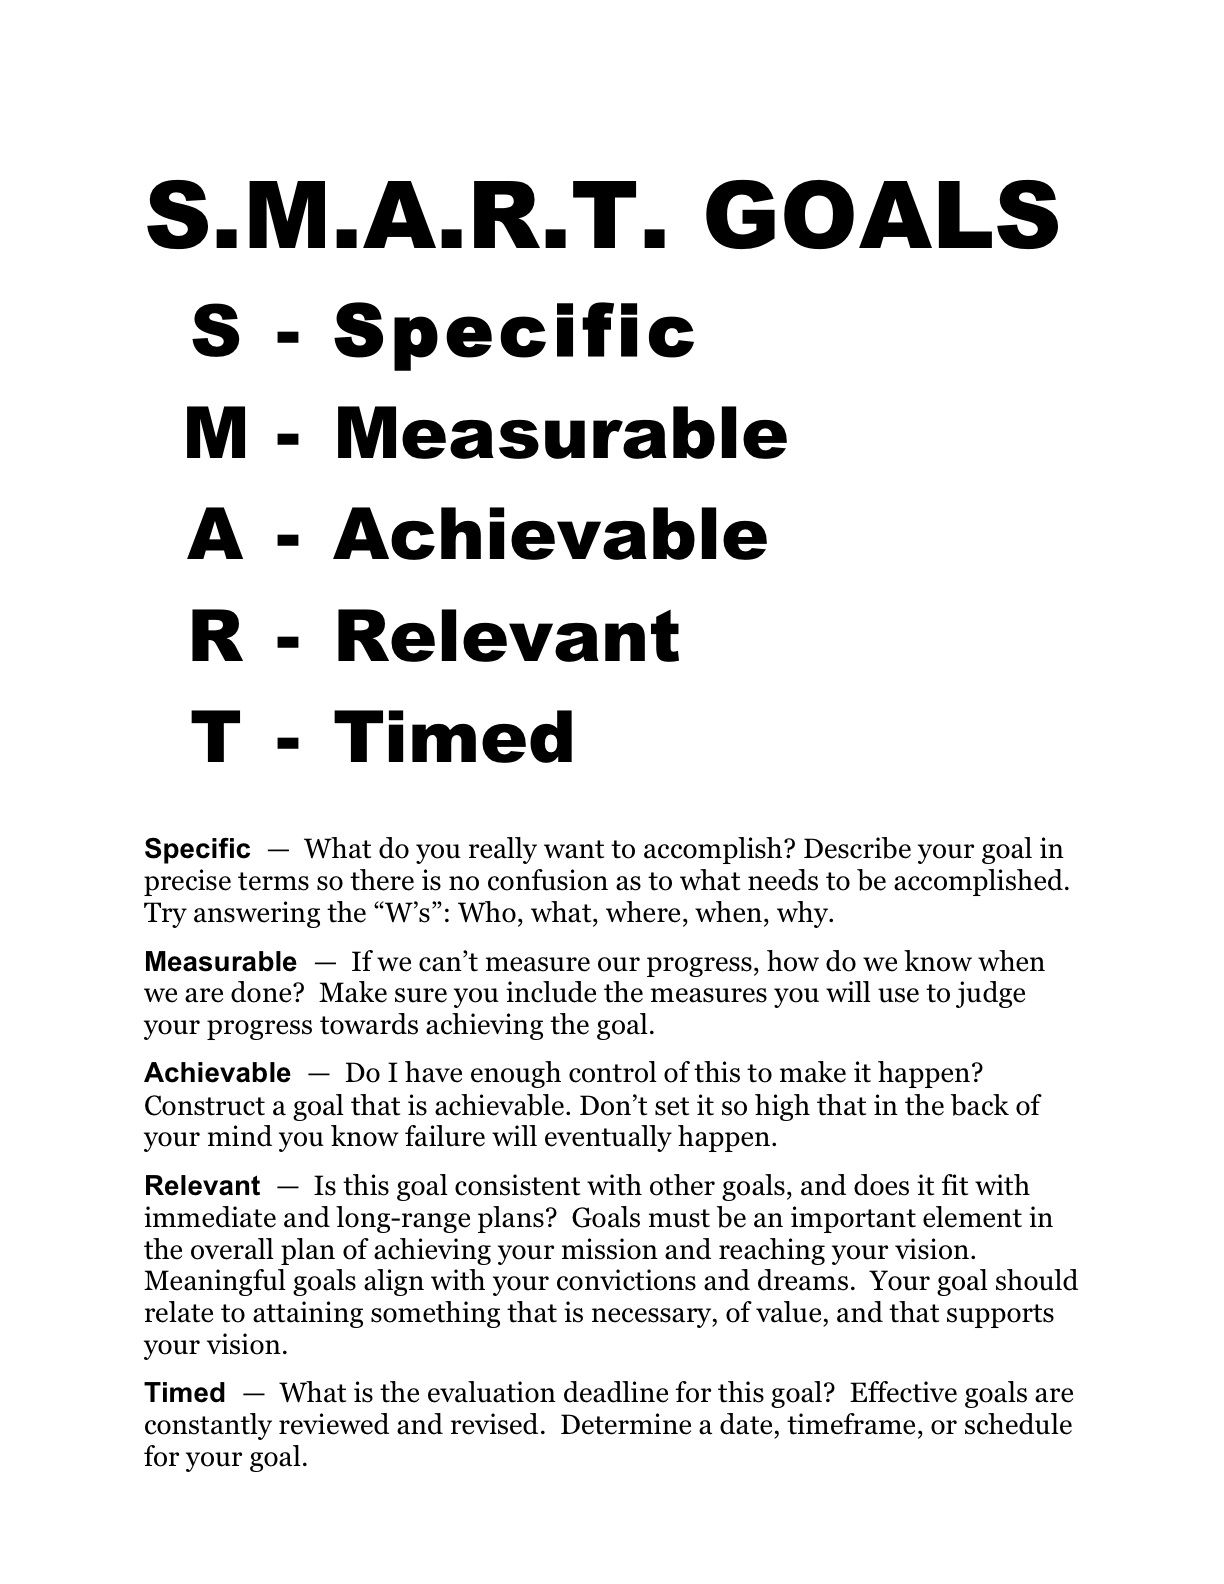 worksheet Smart Goals Worksheet Doc smart goals worksheet iep information pinterest goals